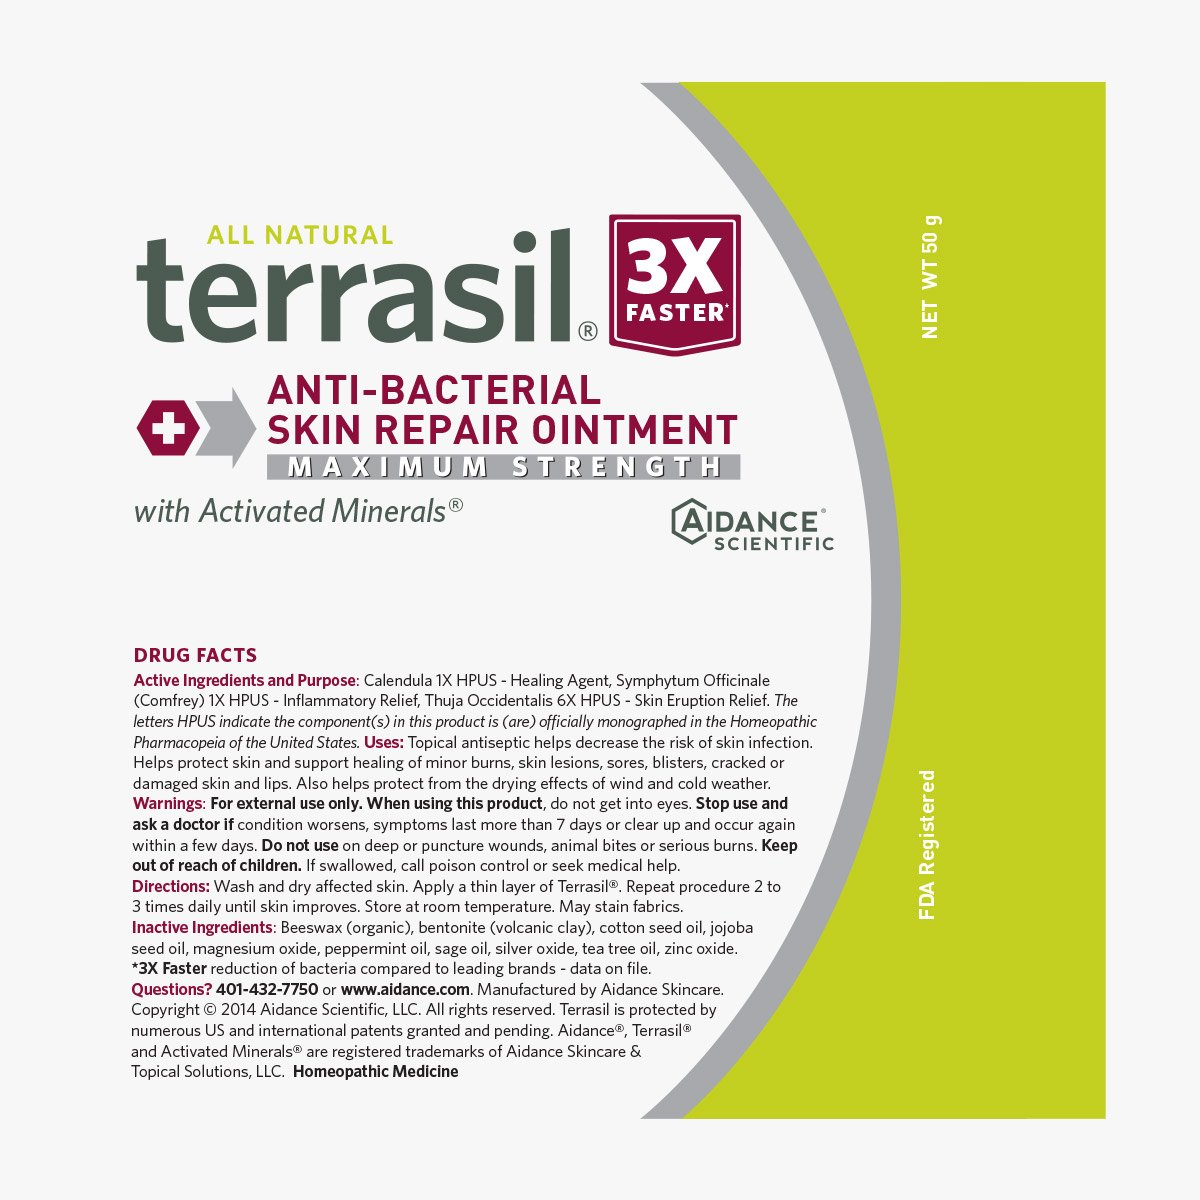 Antibacterial Skin Repair MAX 3X Faster Dr. Recommended 100% Guaranteed All Natural Fissures Folliculitis Angular Cheilitis Impetigo Chilblains Lichen Sclerosus Boils Cellulitis by Terrasil® by Aidance Skincare & Topical Solutions